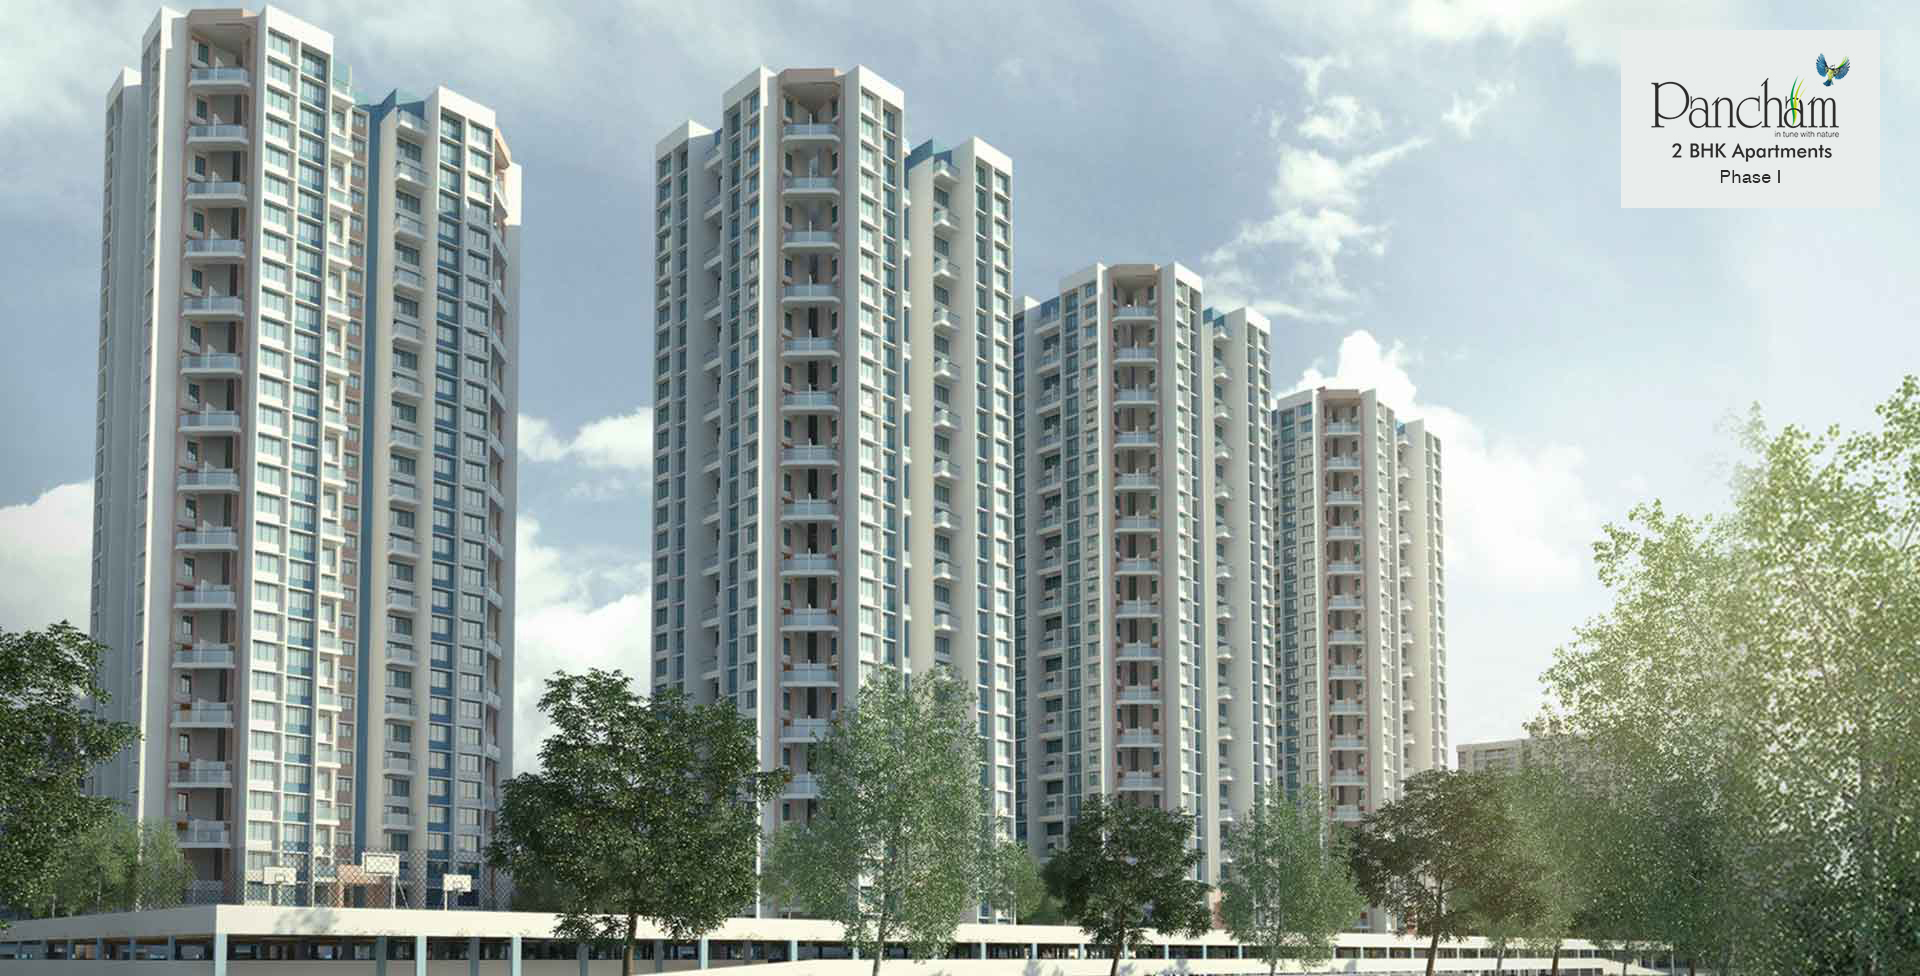 Gated community 2.5 bhk apartments in sinhagad road